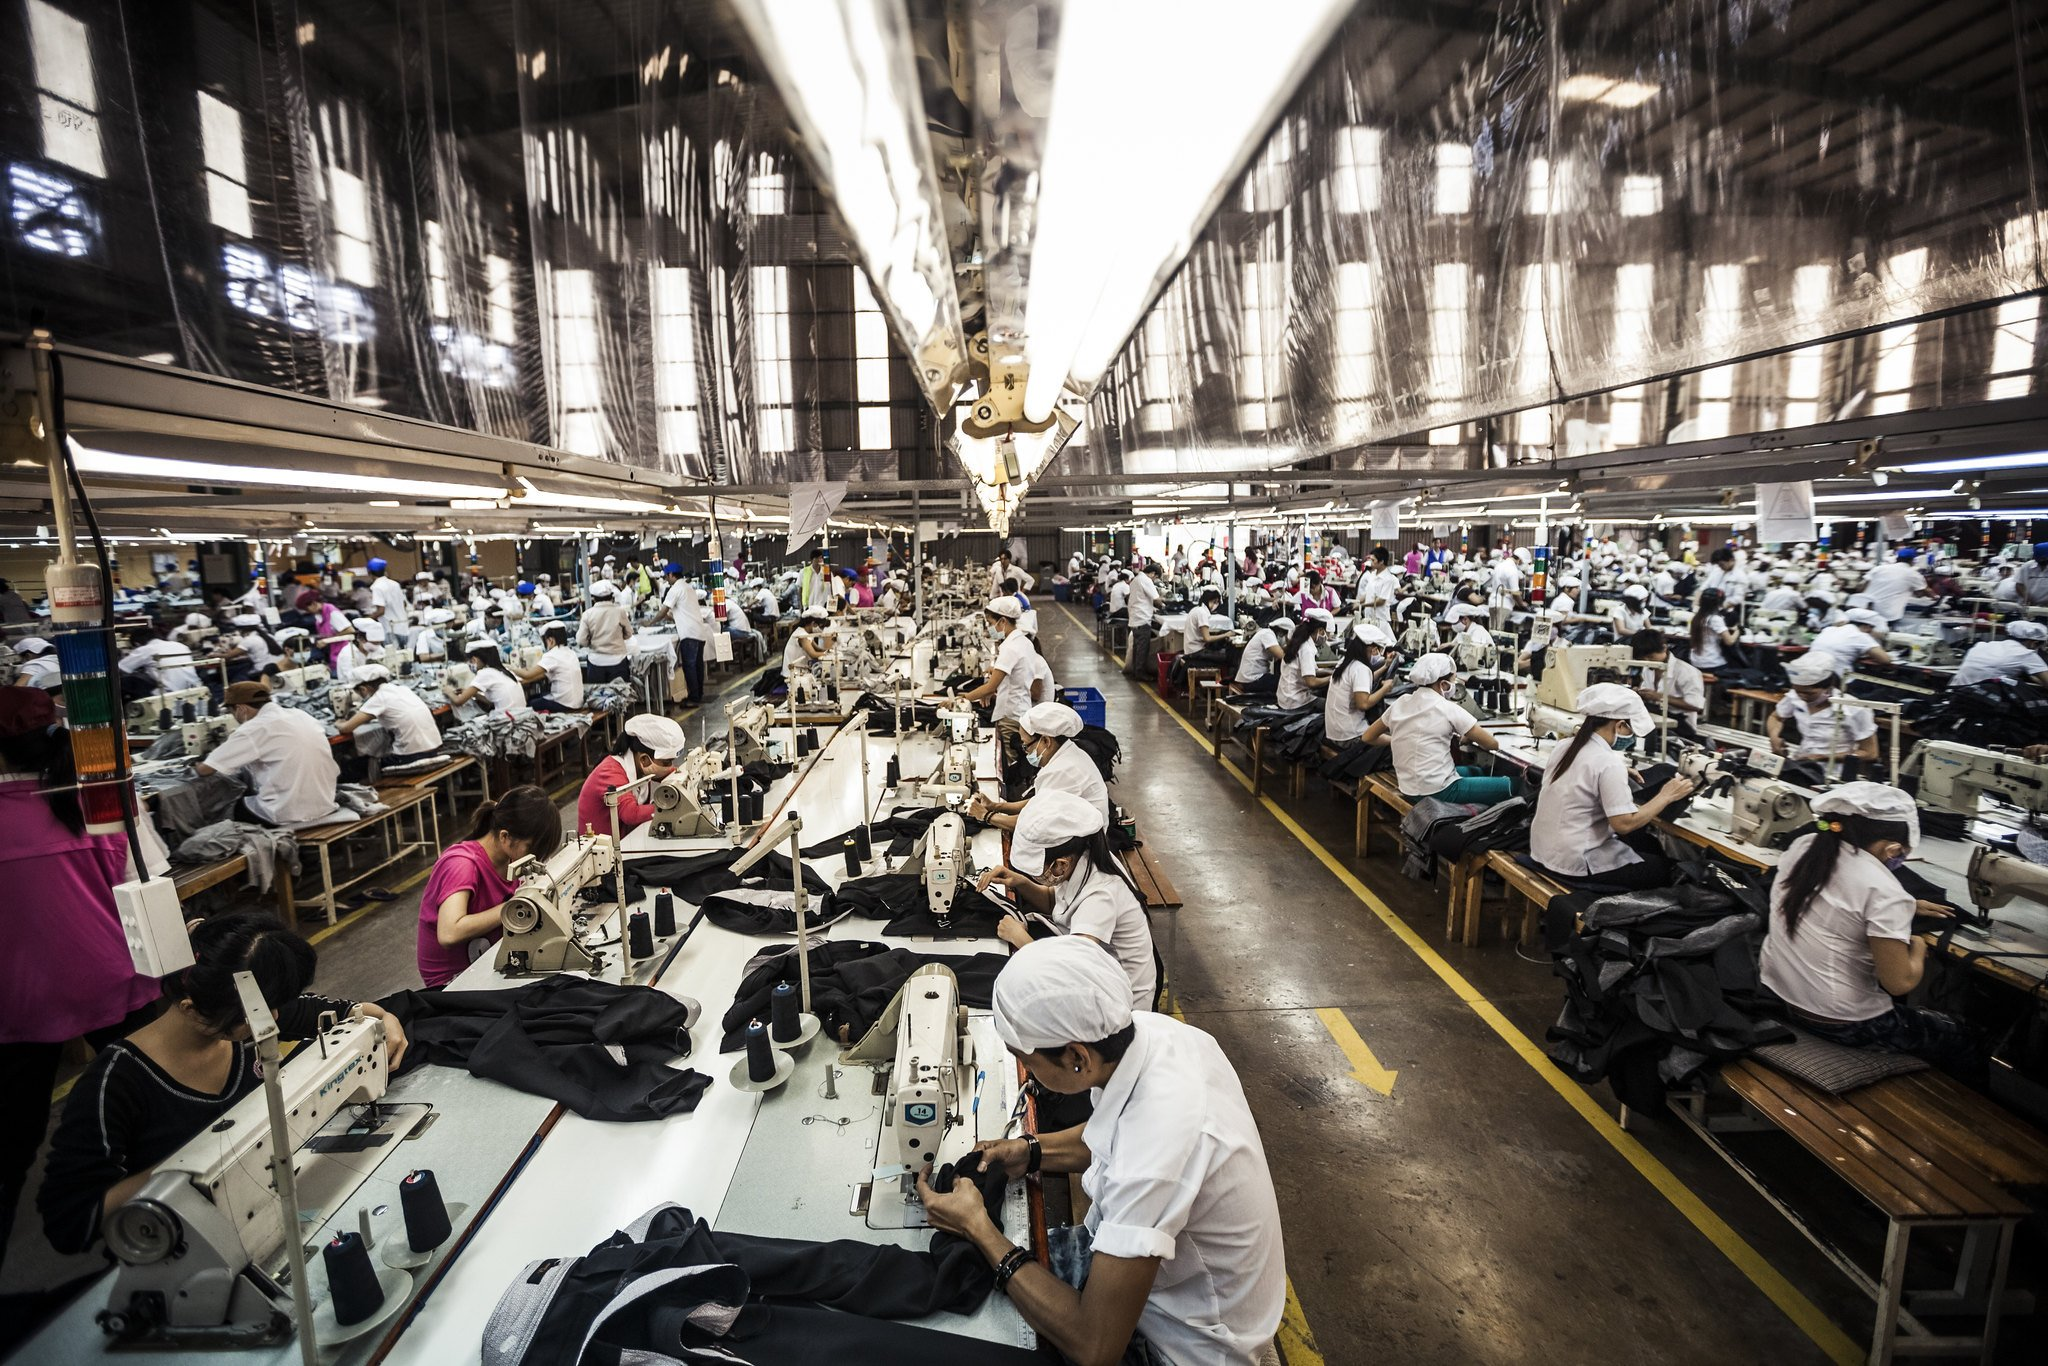 Photograph of factory workers at sewing machines